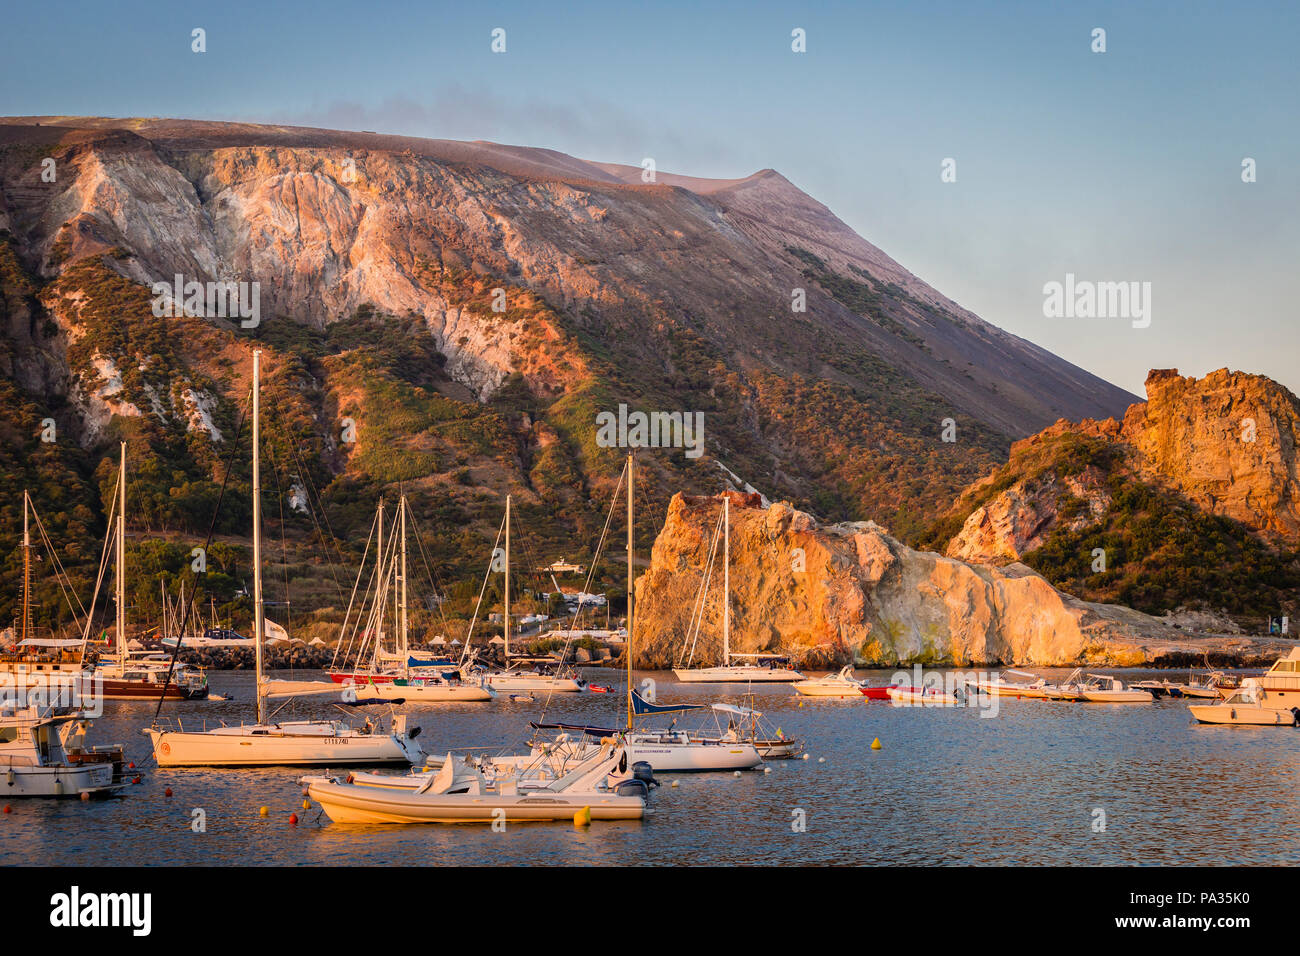 The marina of Vulcano at sunrise with the volcano slopes, Aeolian Islands, Sicily. - Stock Image